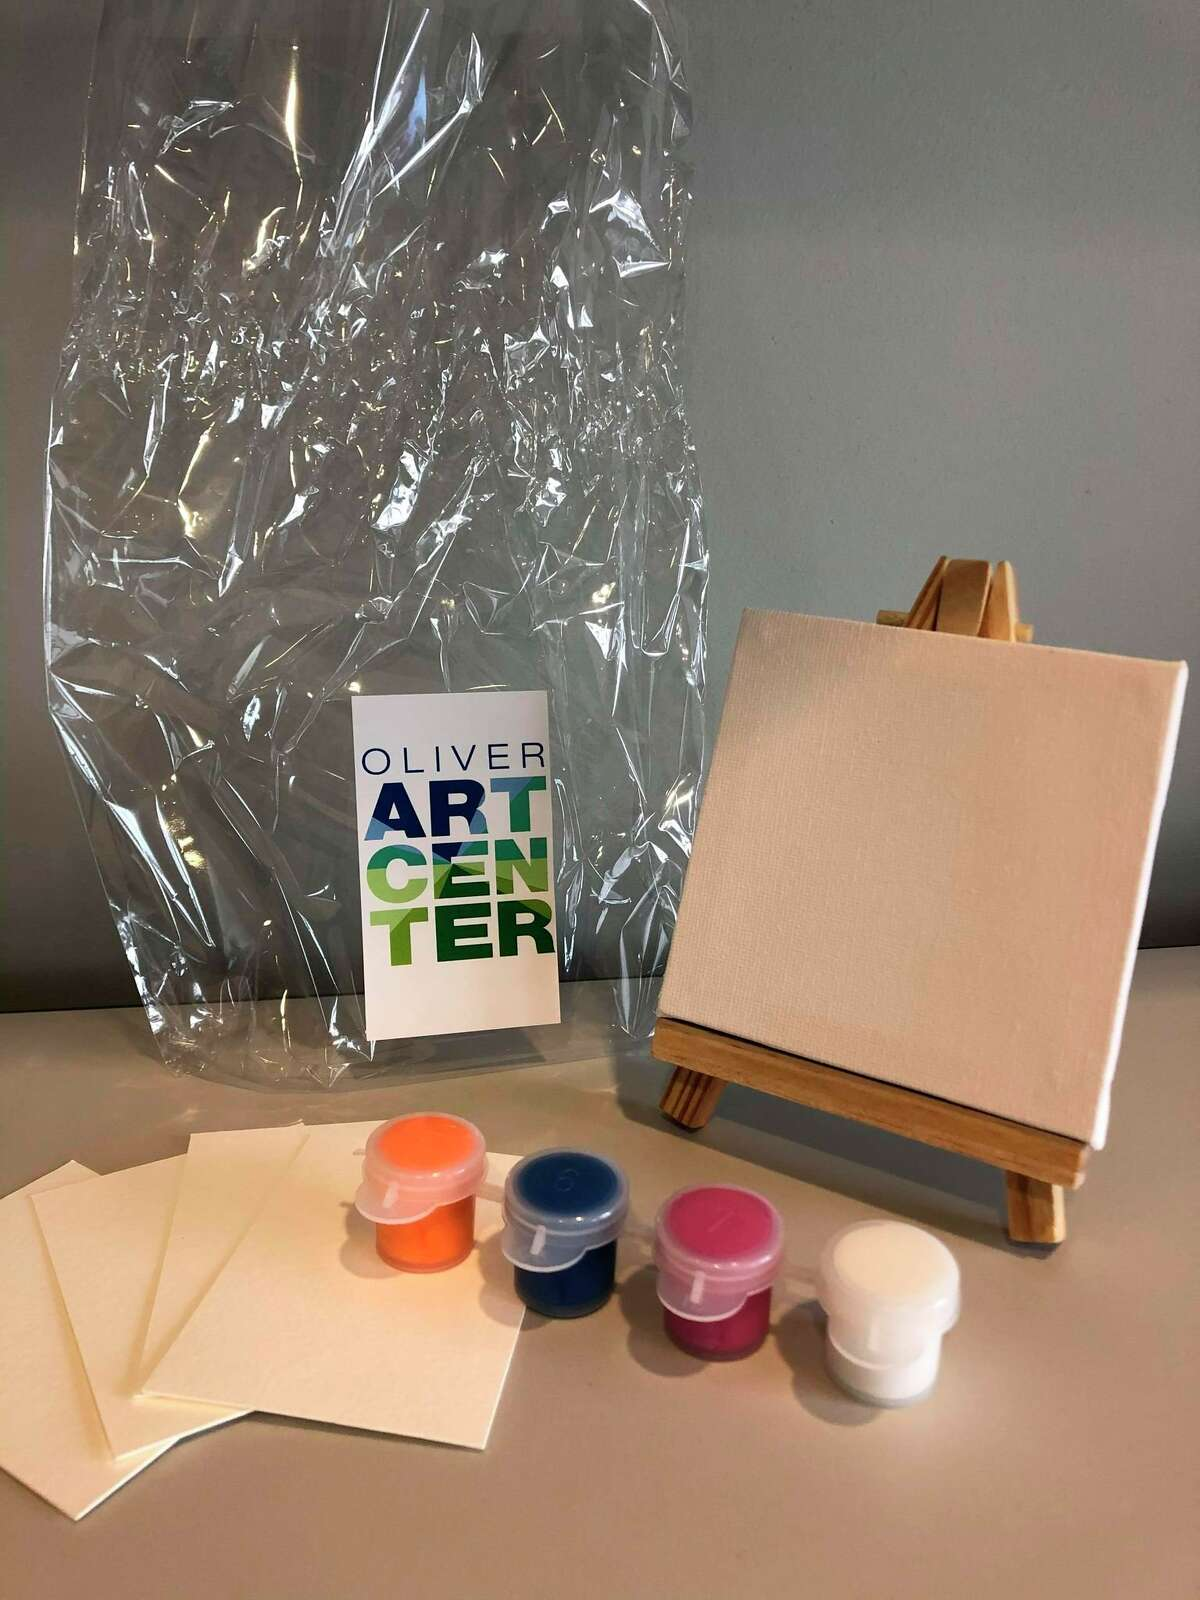 Donations can be made for theOliver Art Center's Little Free Art Galleries. (Courtesy photo)